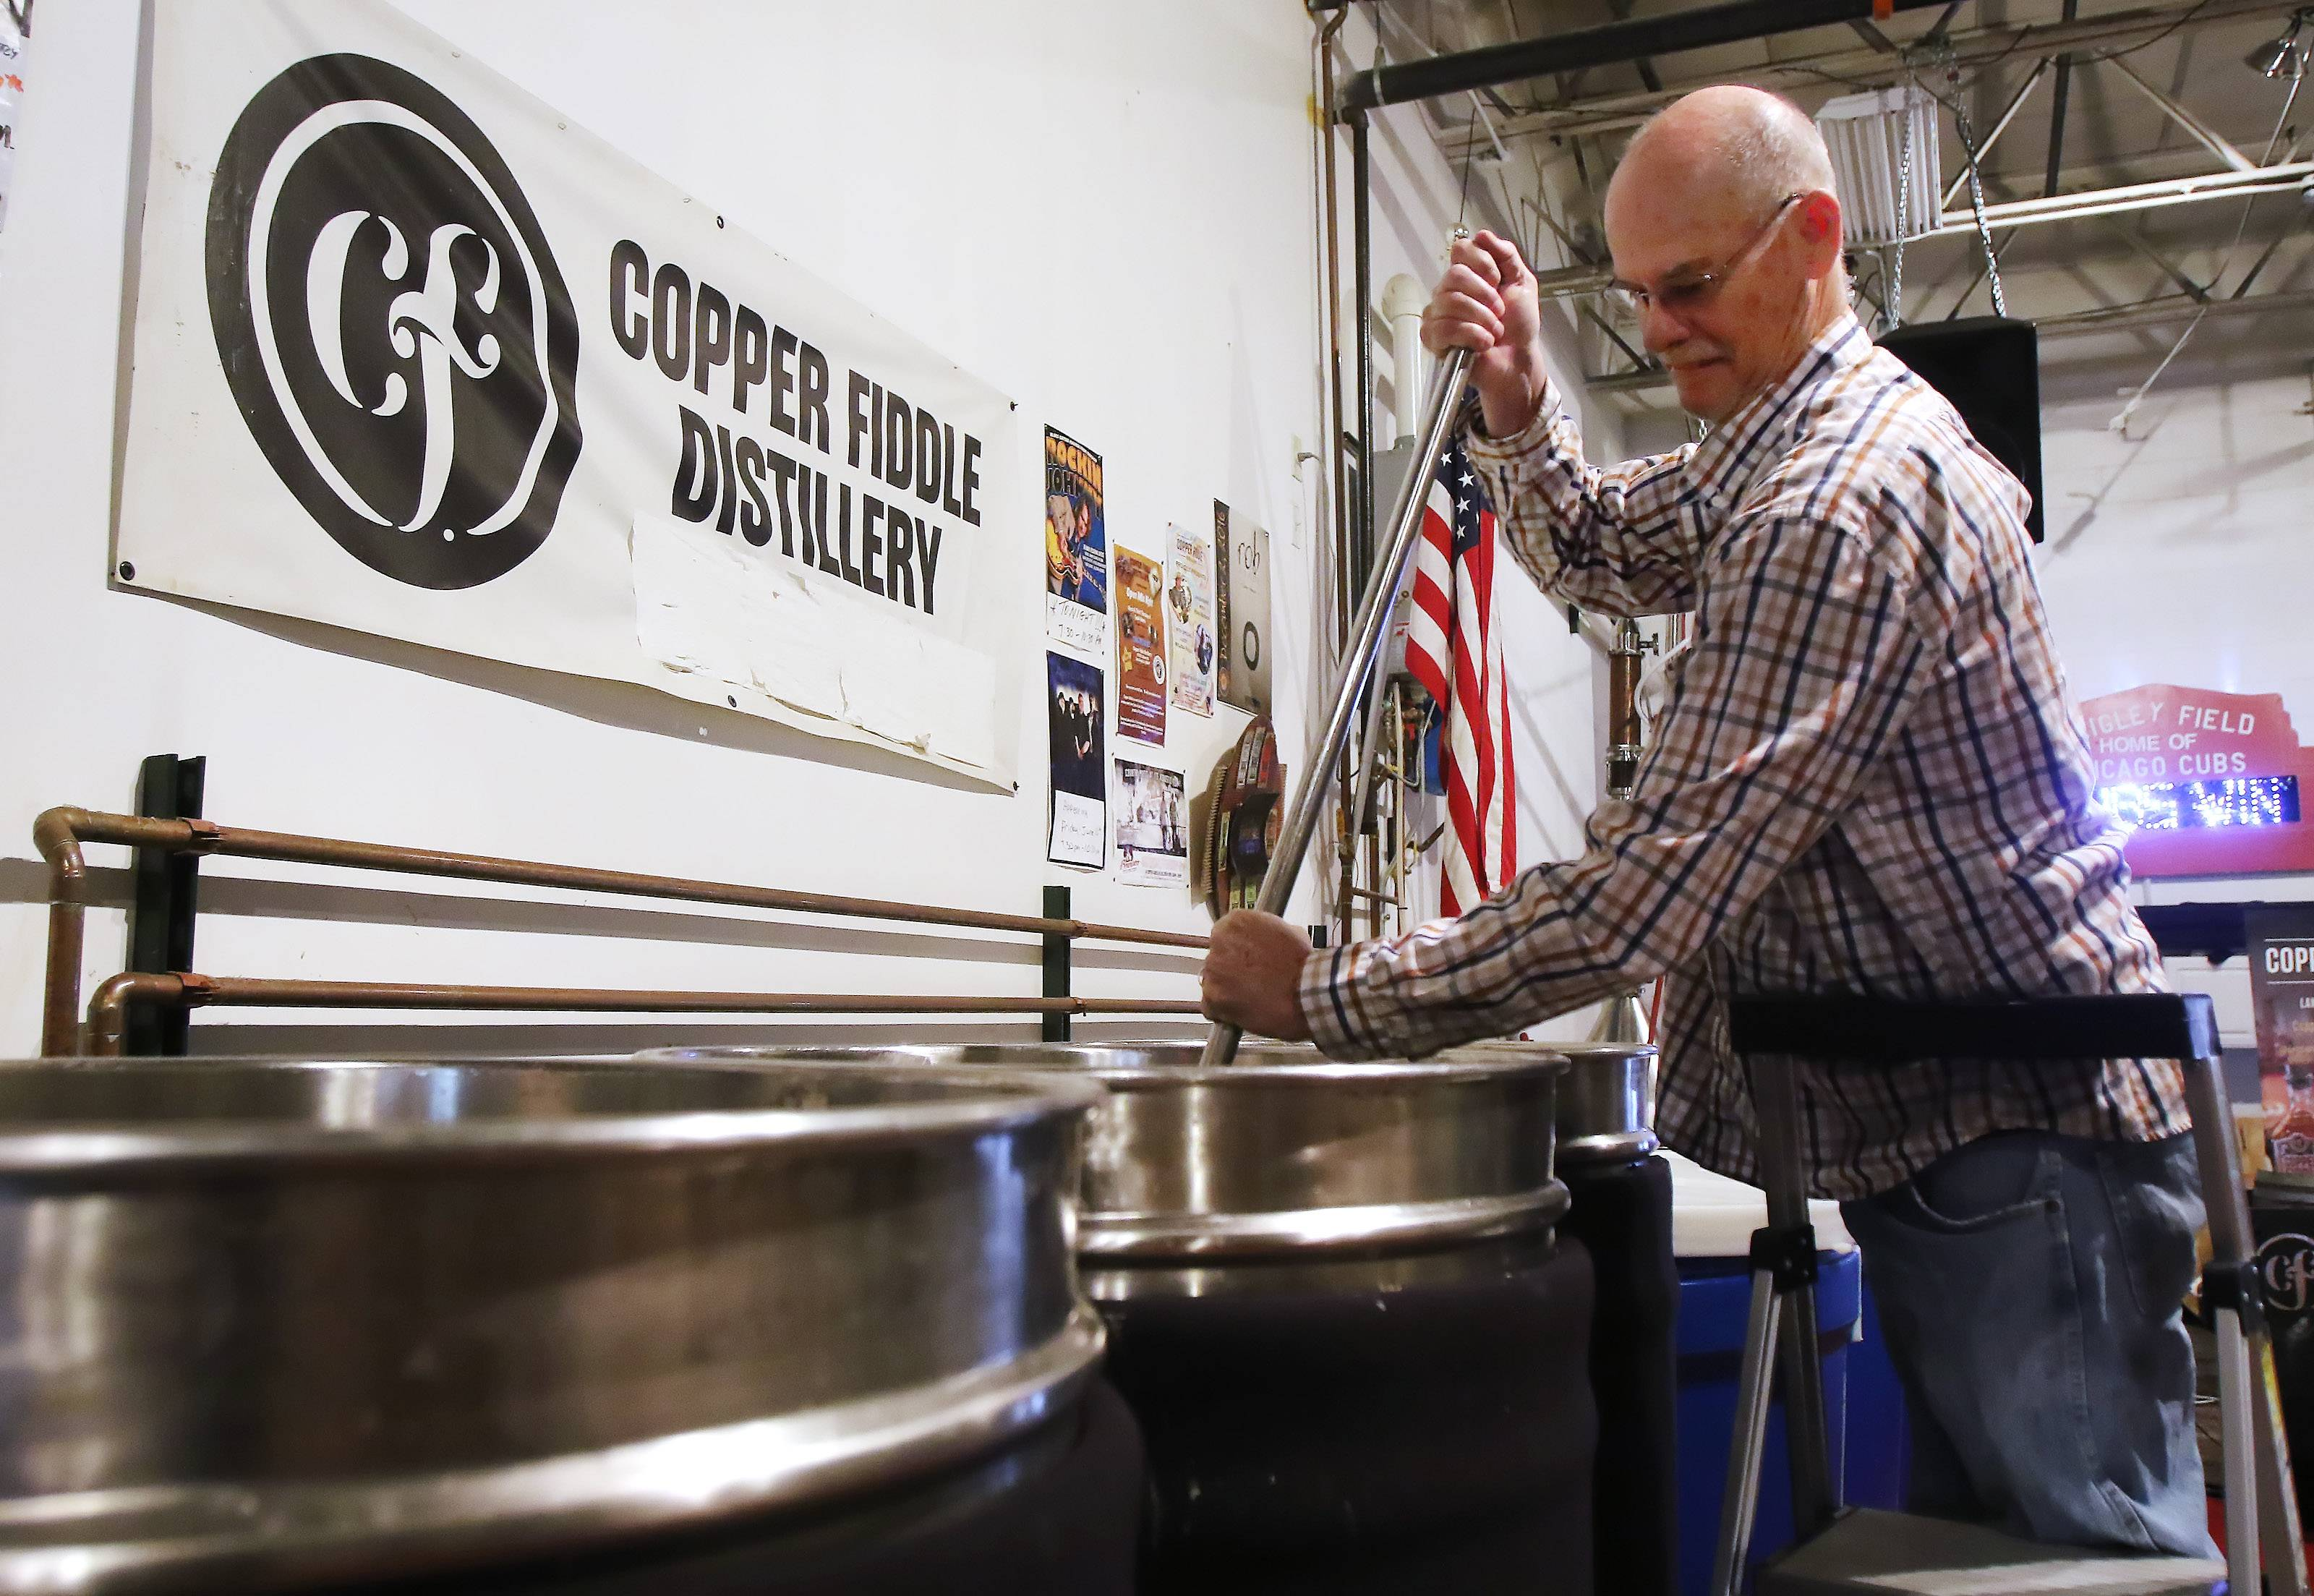 Copper Fiddle Distillery co-owner Fred Robinson says it doesn't make sense state law prohibits him from delivering a small amount of his product to local bars, restaurants and stores. He's now working with a state lawmaker to change that.